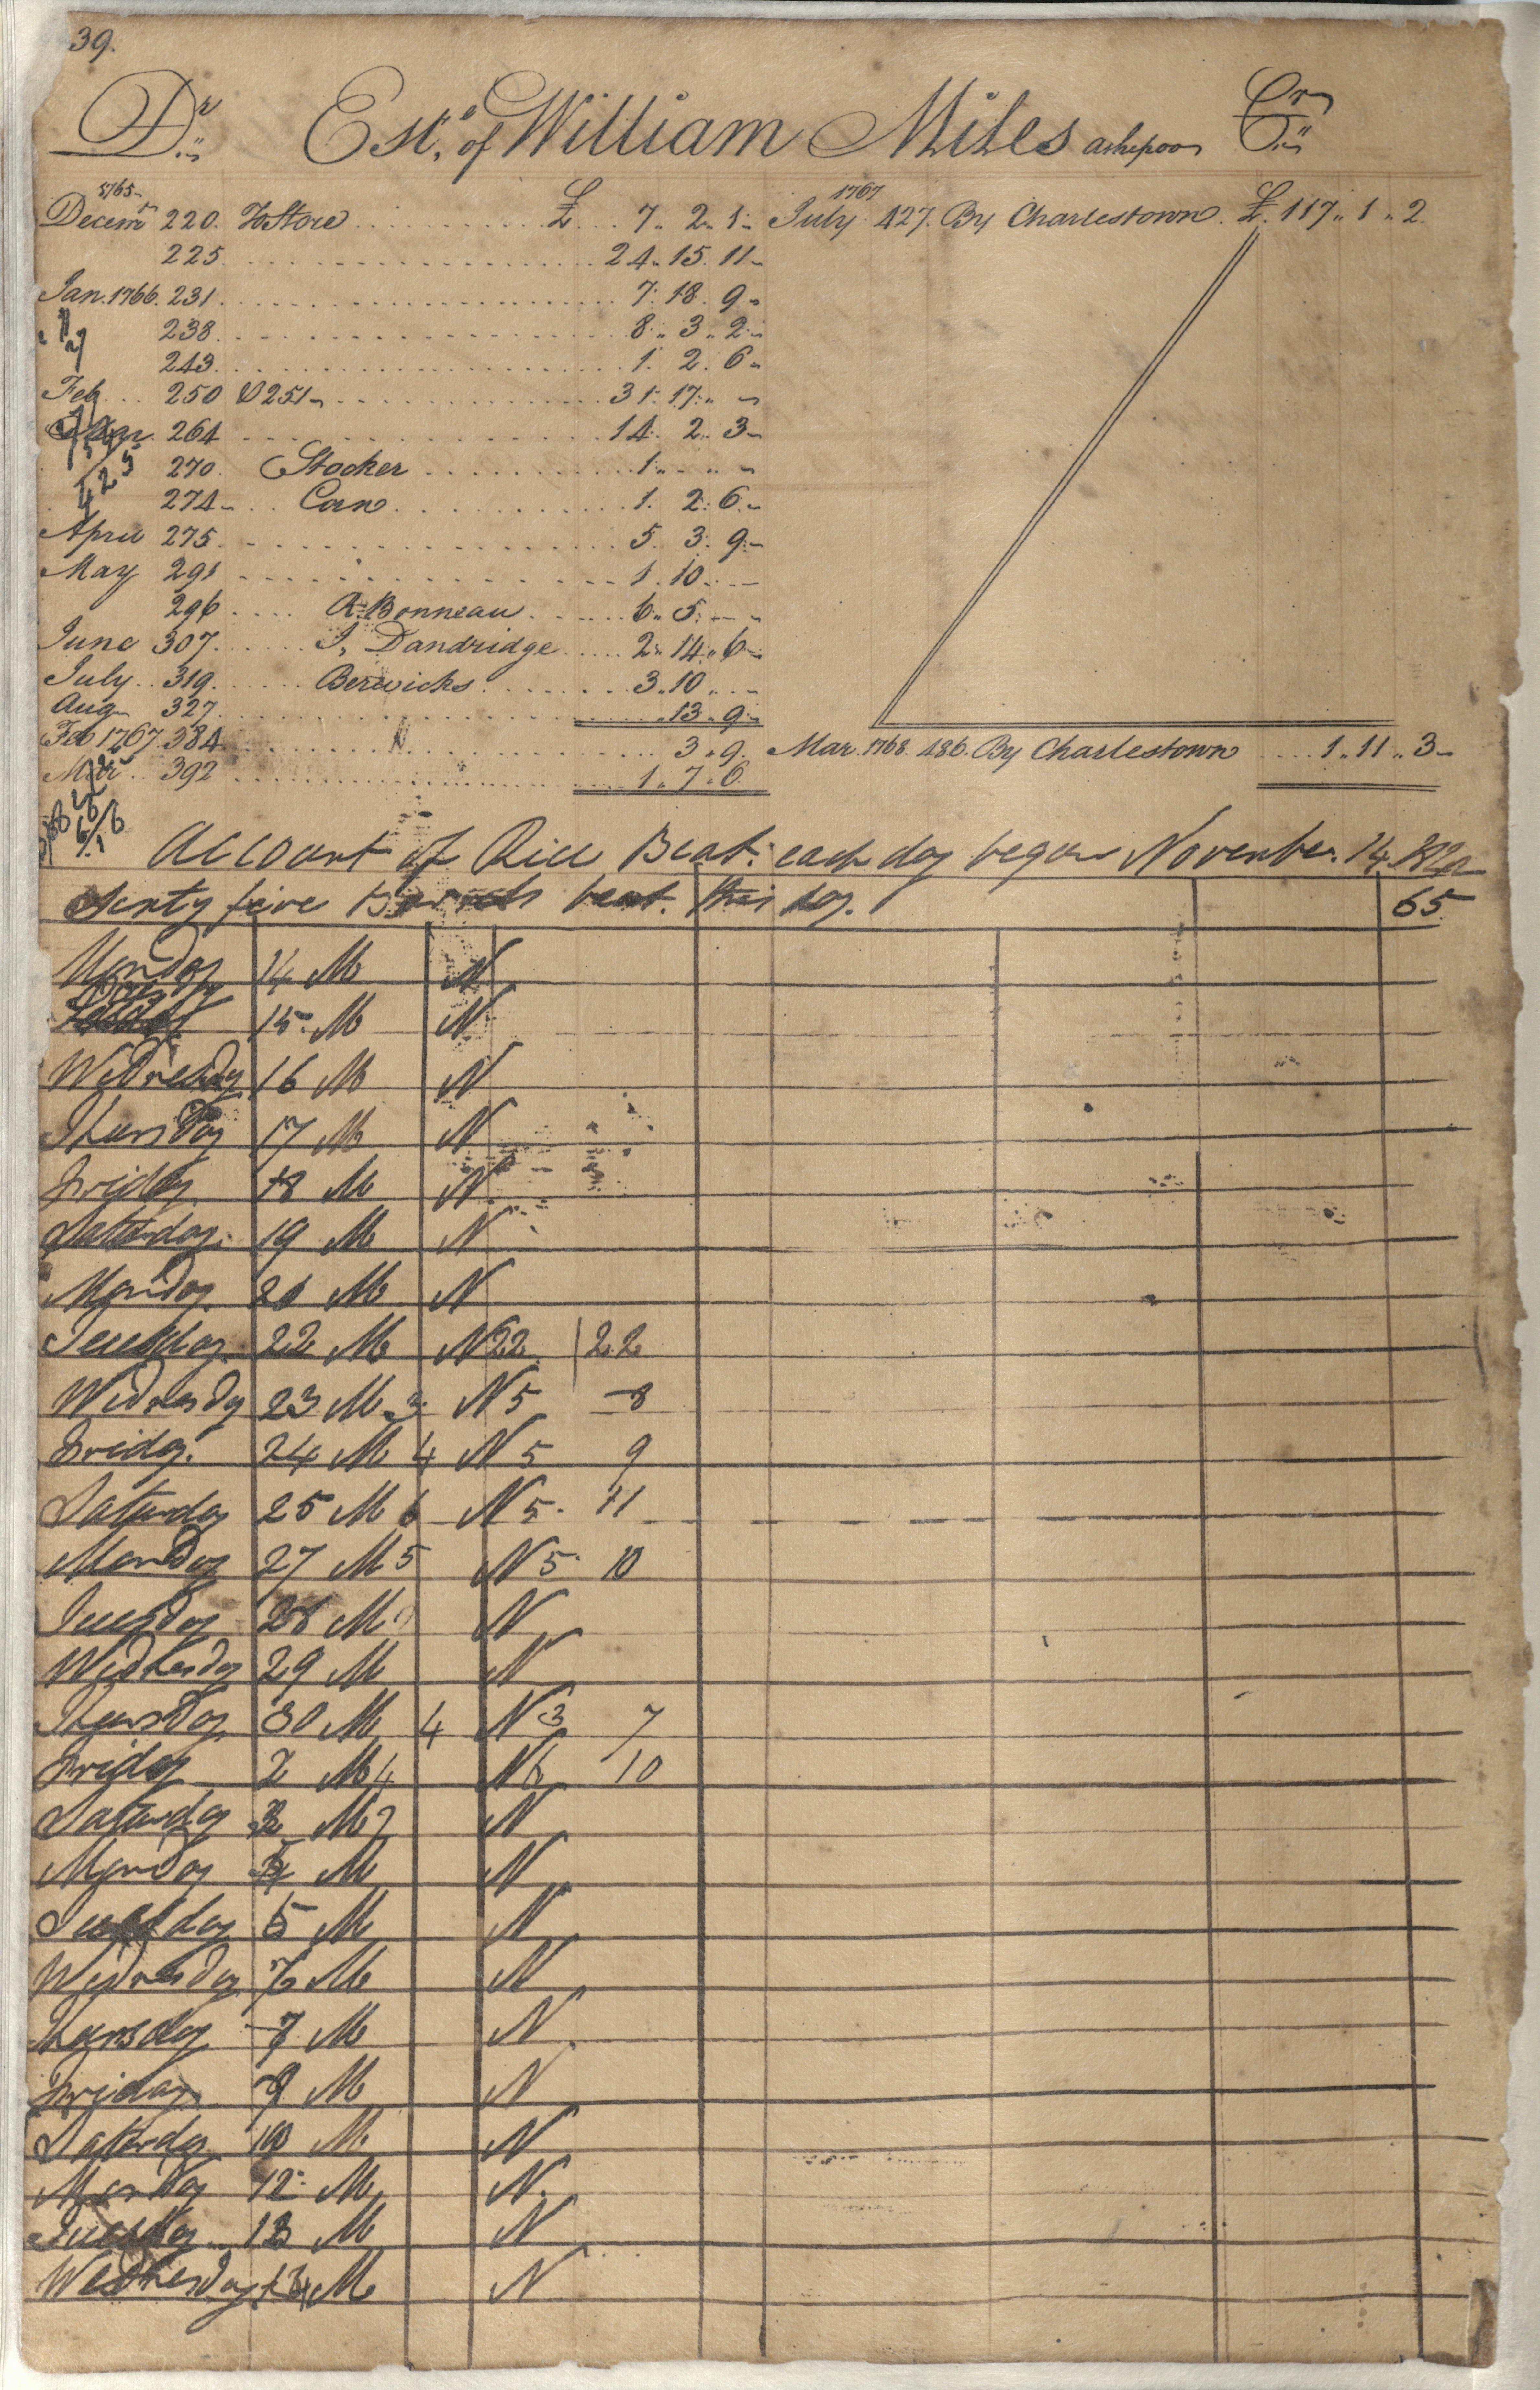 Plowden Weston's Business Ledger, page 239